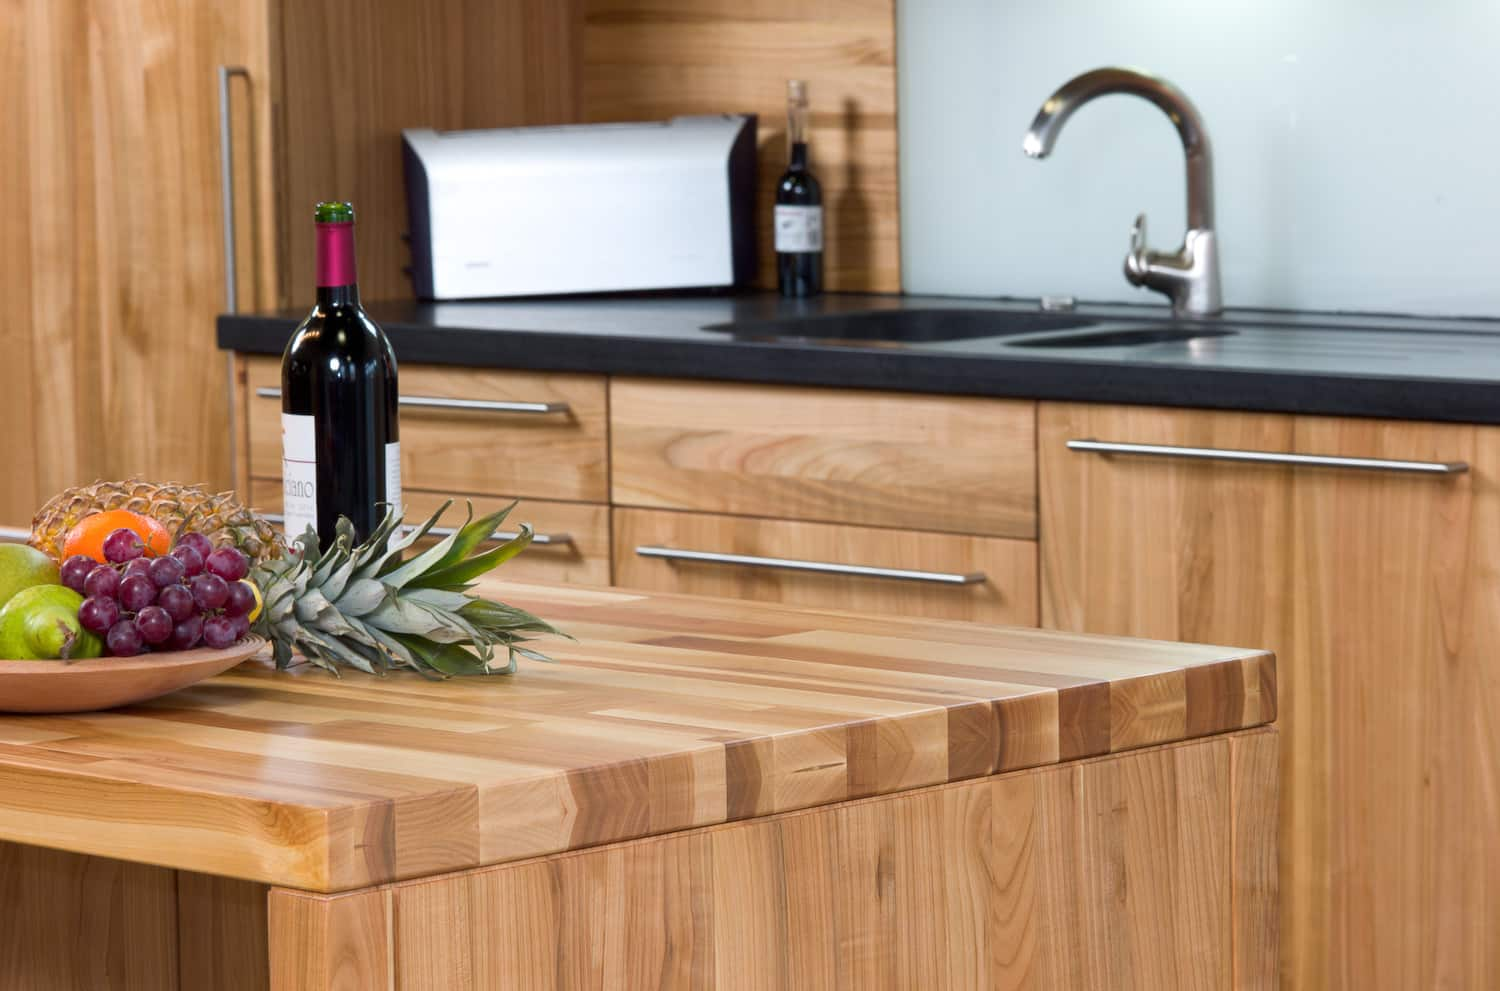 Wooden furniture and black laminated countertop